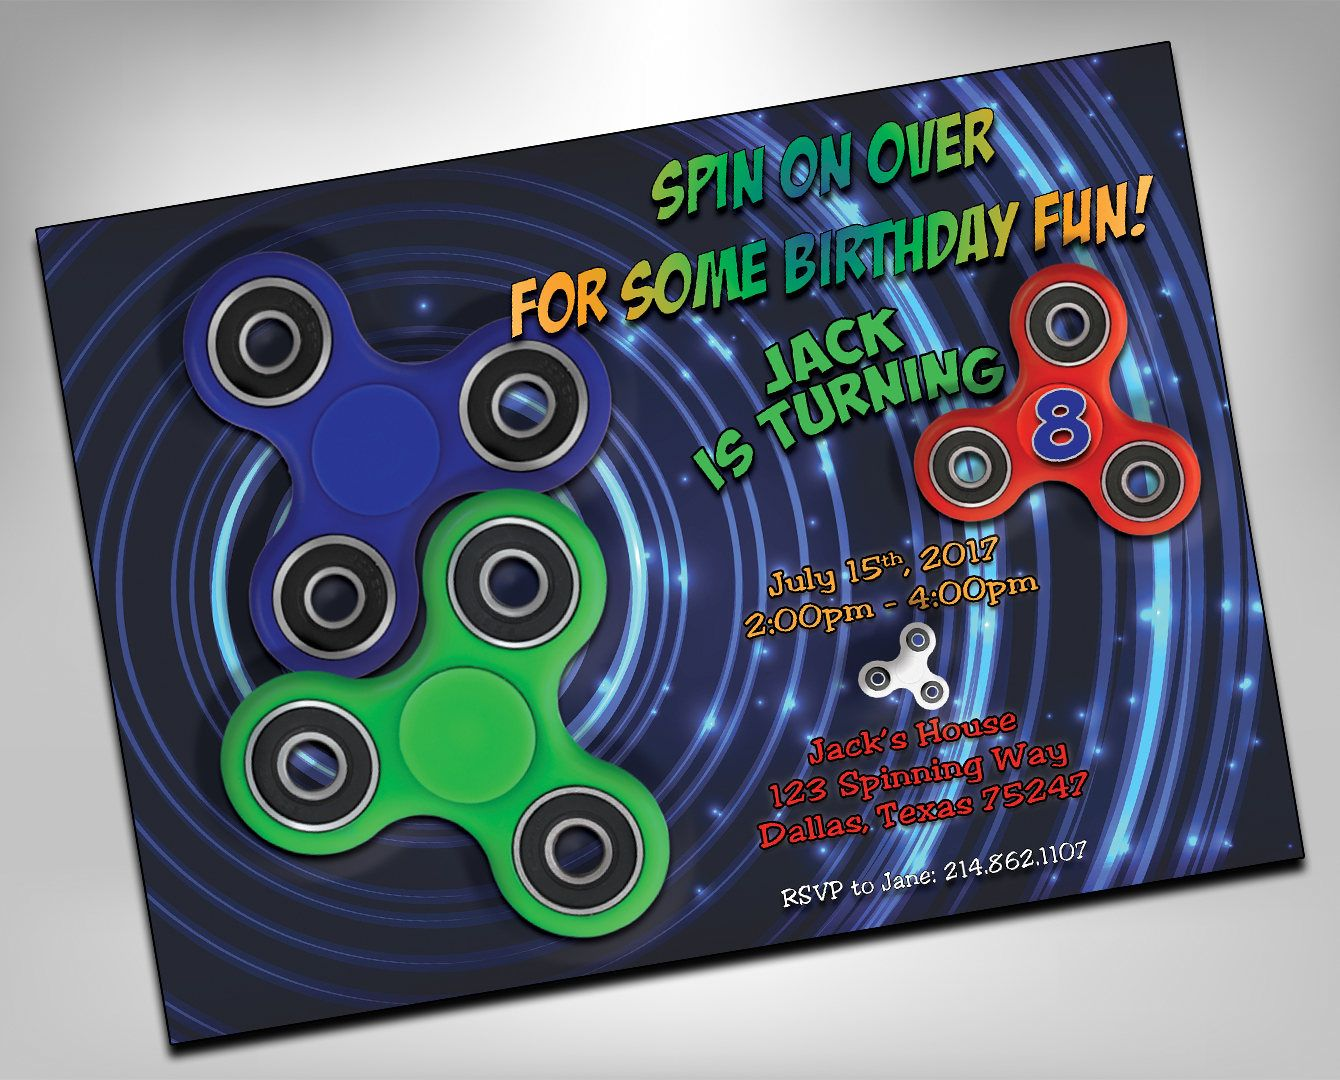 wording ideas forst birthday party invitation%0A Fidget Spinner Invitation  Fidget Spinner Birthday Invitation  Fidget  Spinner Party Invitation  Fidget Spinners